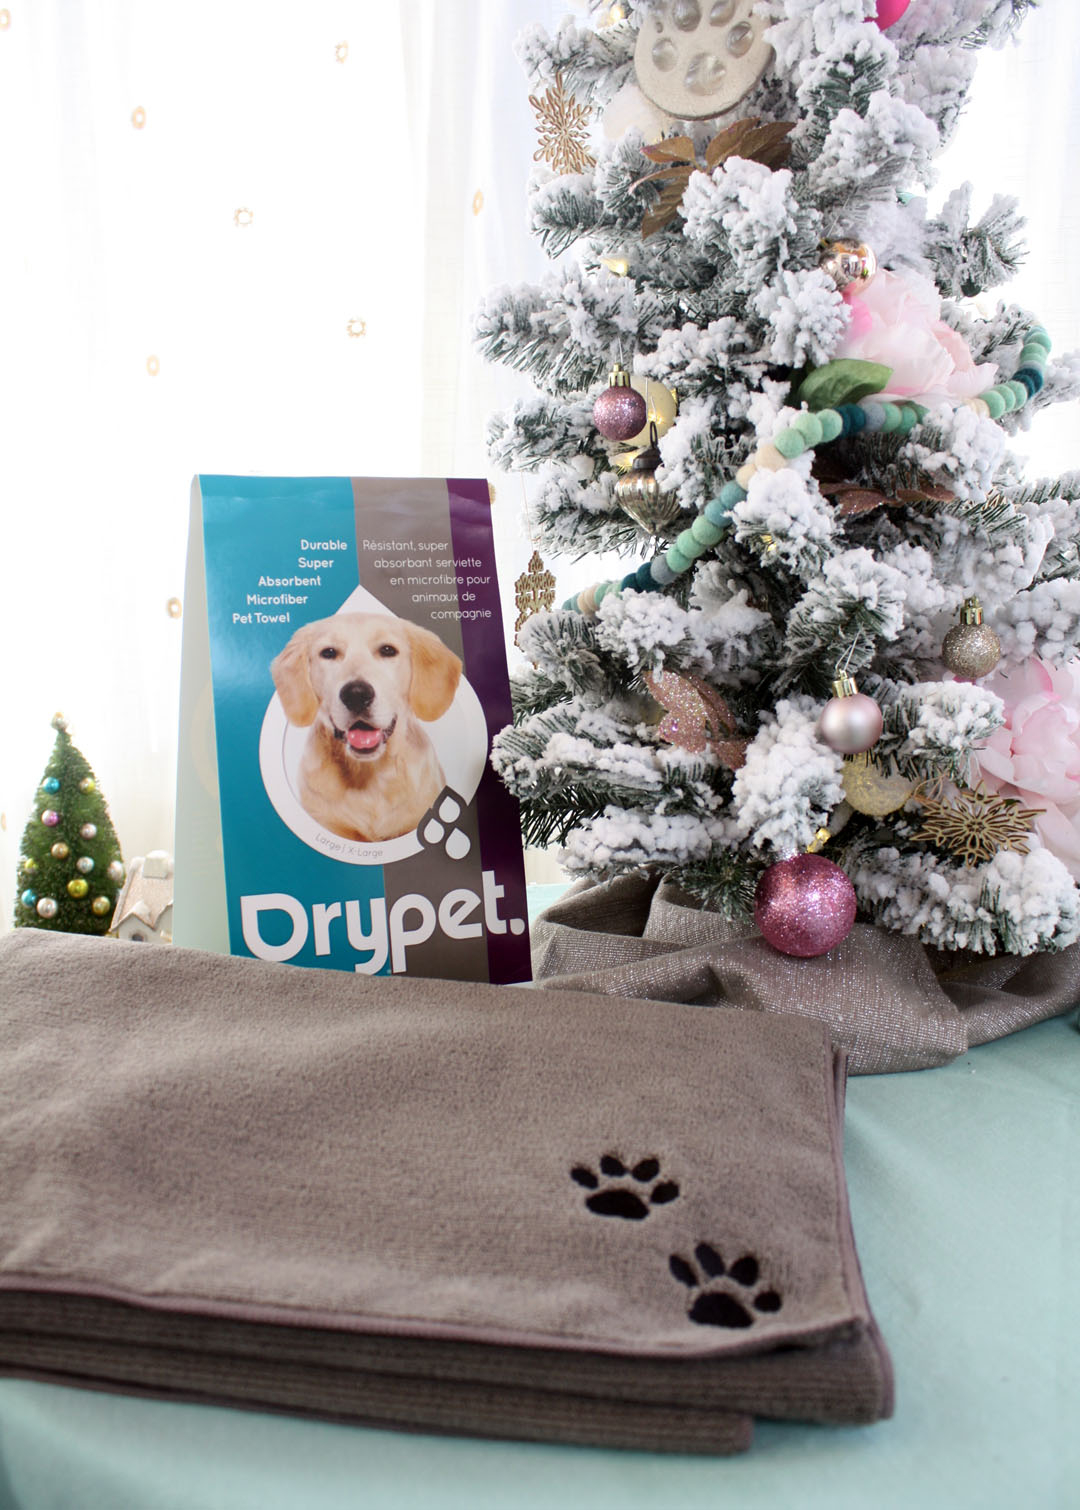 2017 Wear Wag Repeat Gift Guide Dry Pet